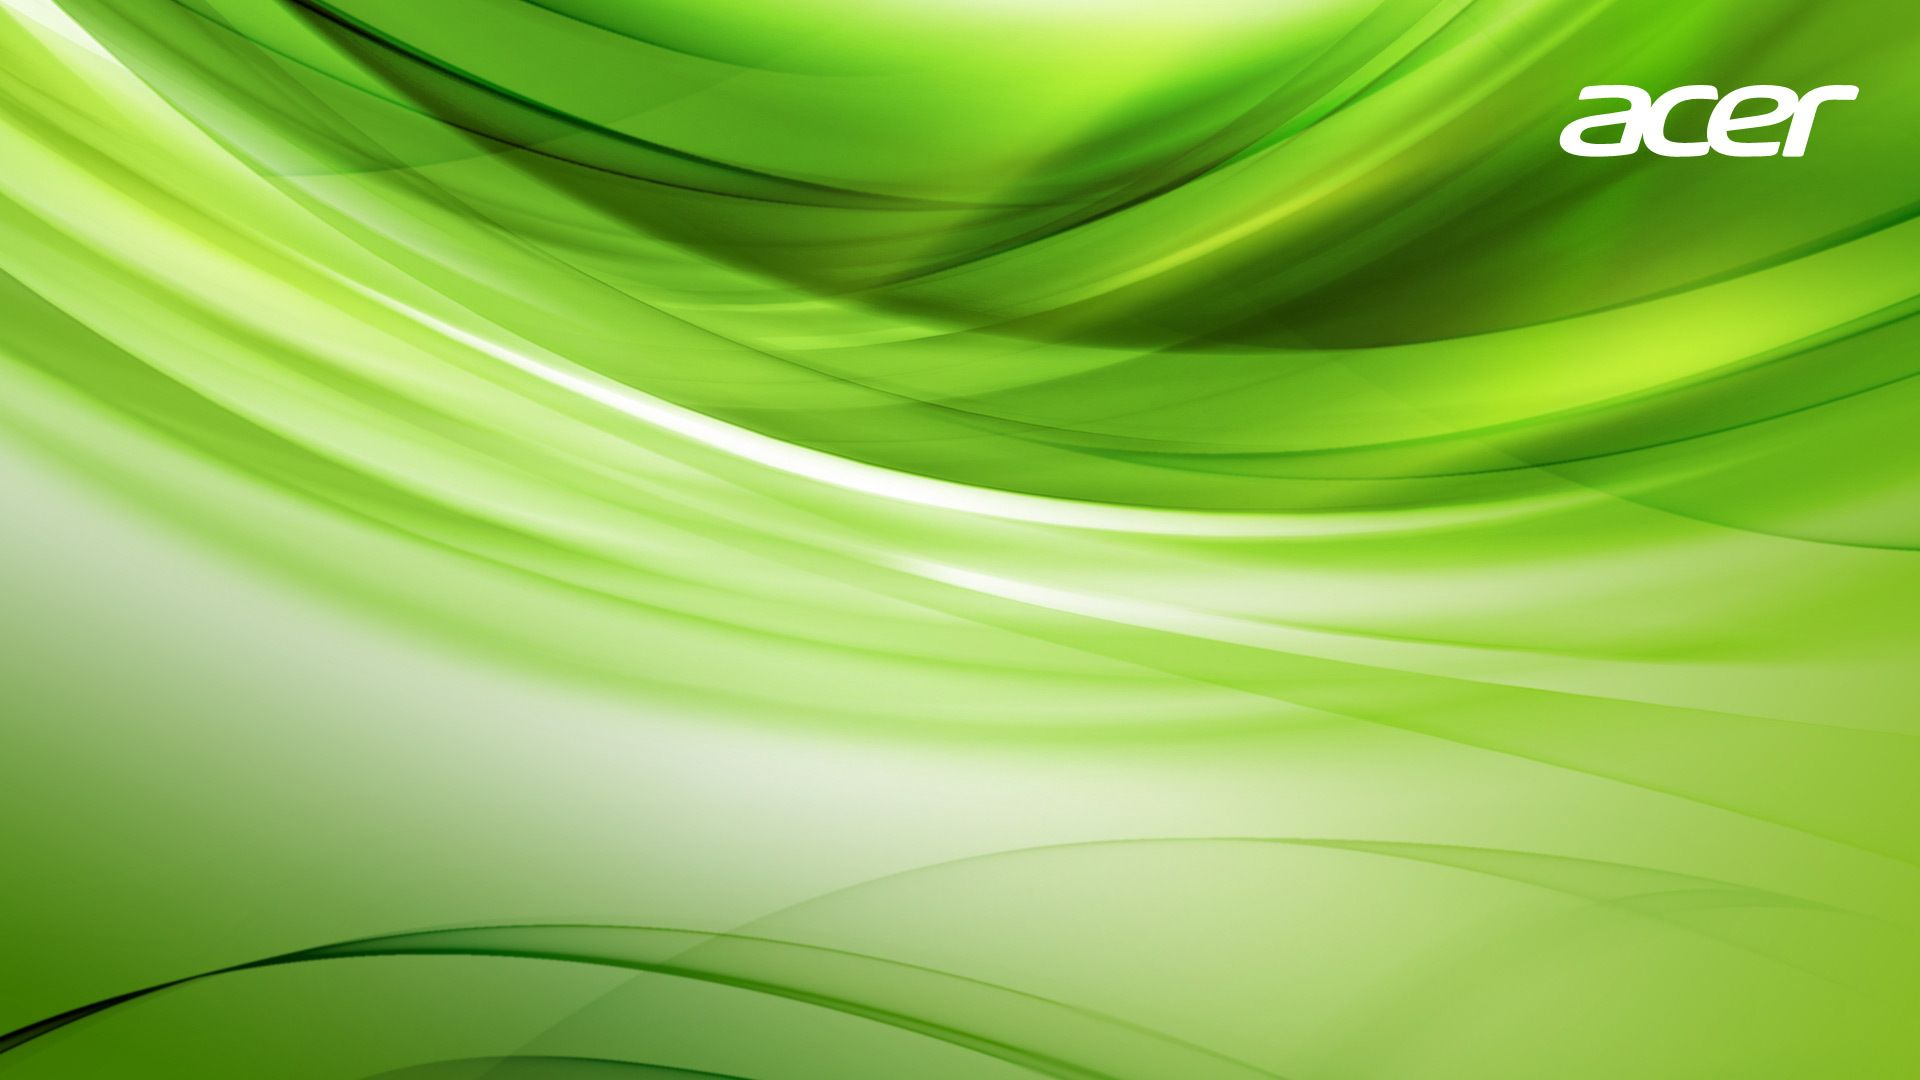 Solved: Acer Aspire S Windows  Stock Wallpapers  Acer Community 1920x1080